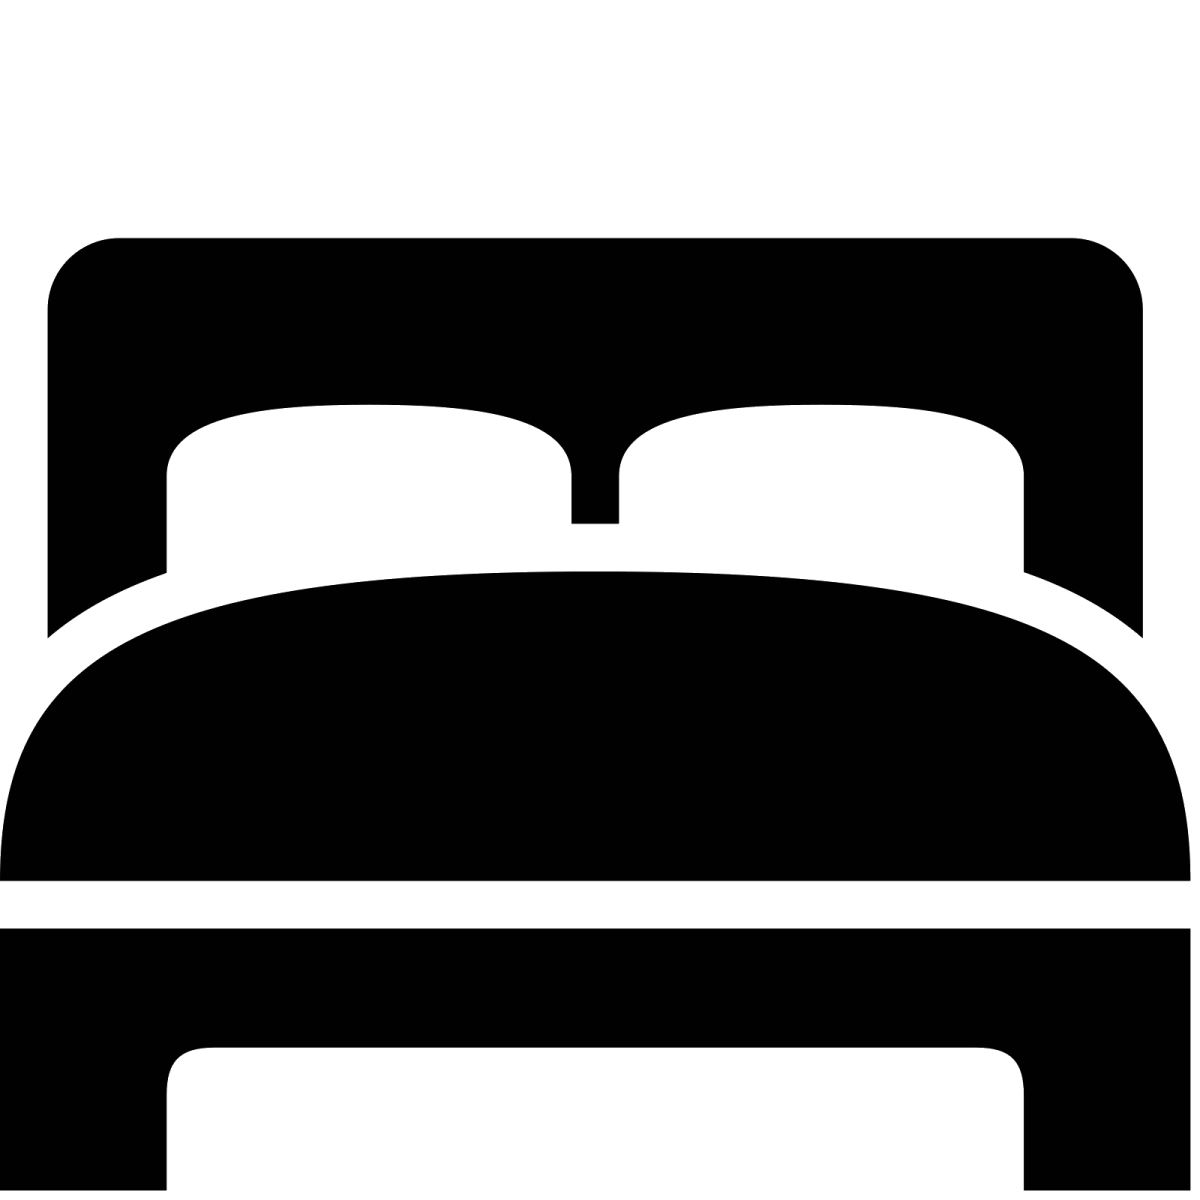 /files/files/tienich/bed-icon-png-299677-free-icons-library-bed-icon-png-1600_1600.jpg